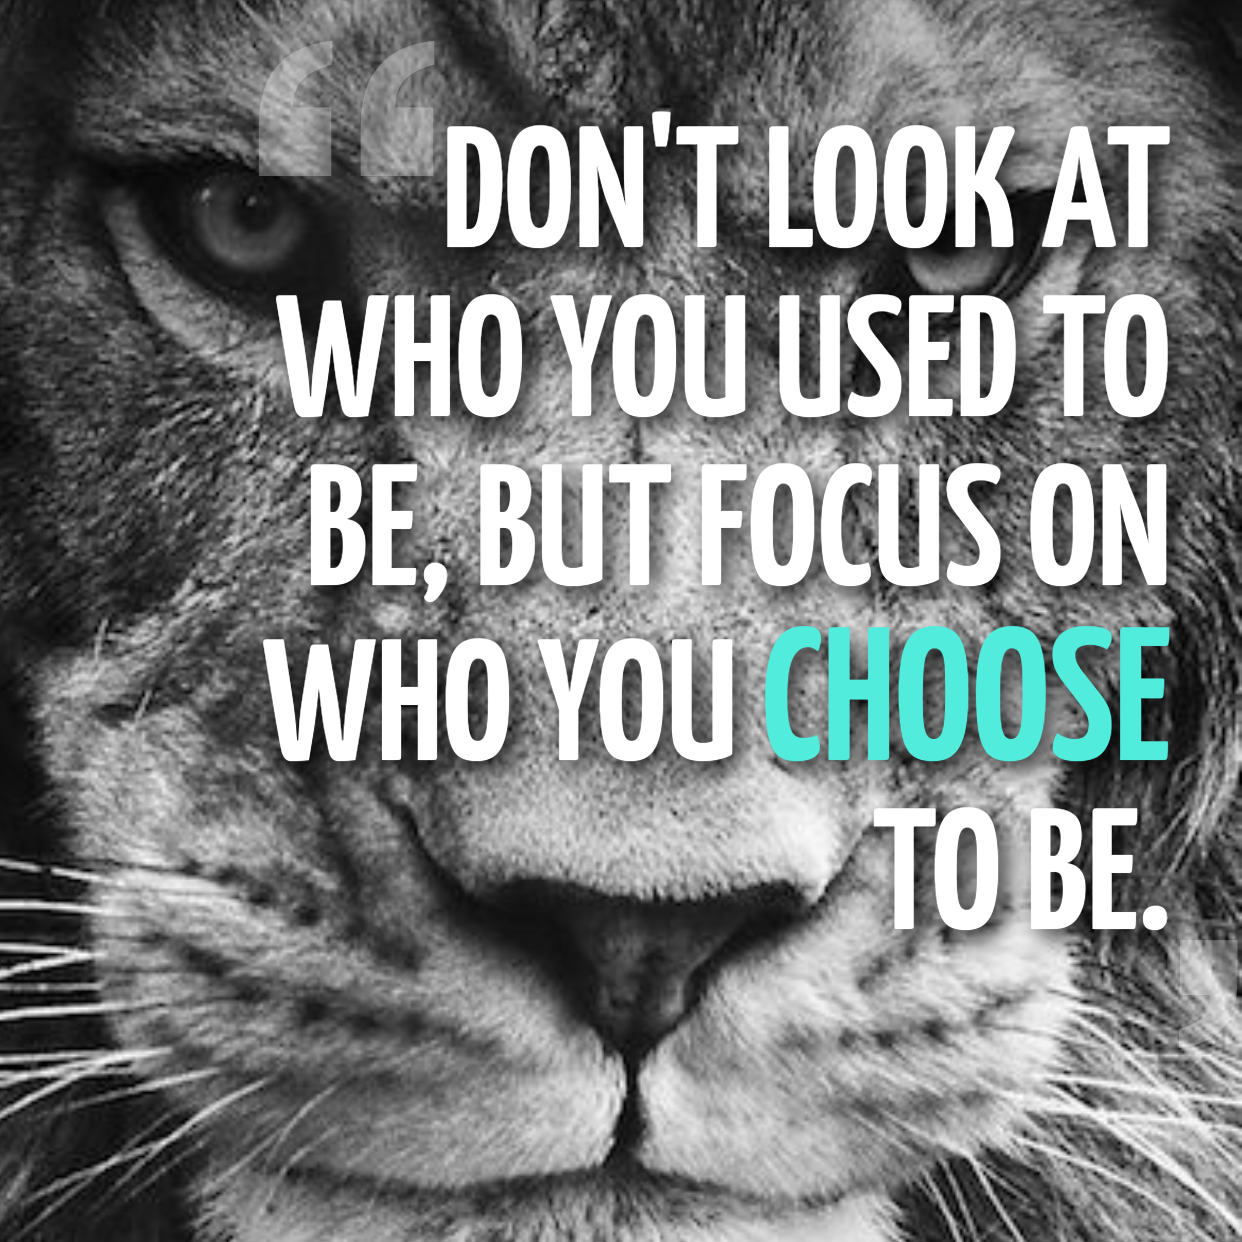 [image] Life is made of choices, make the right ones.